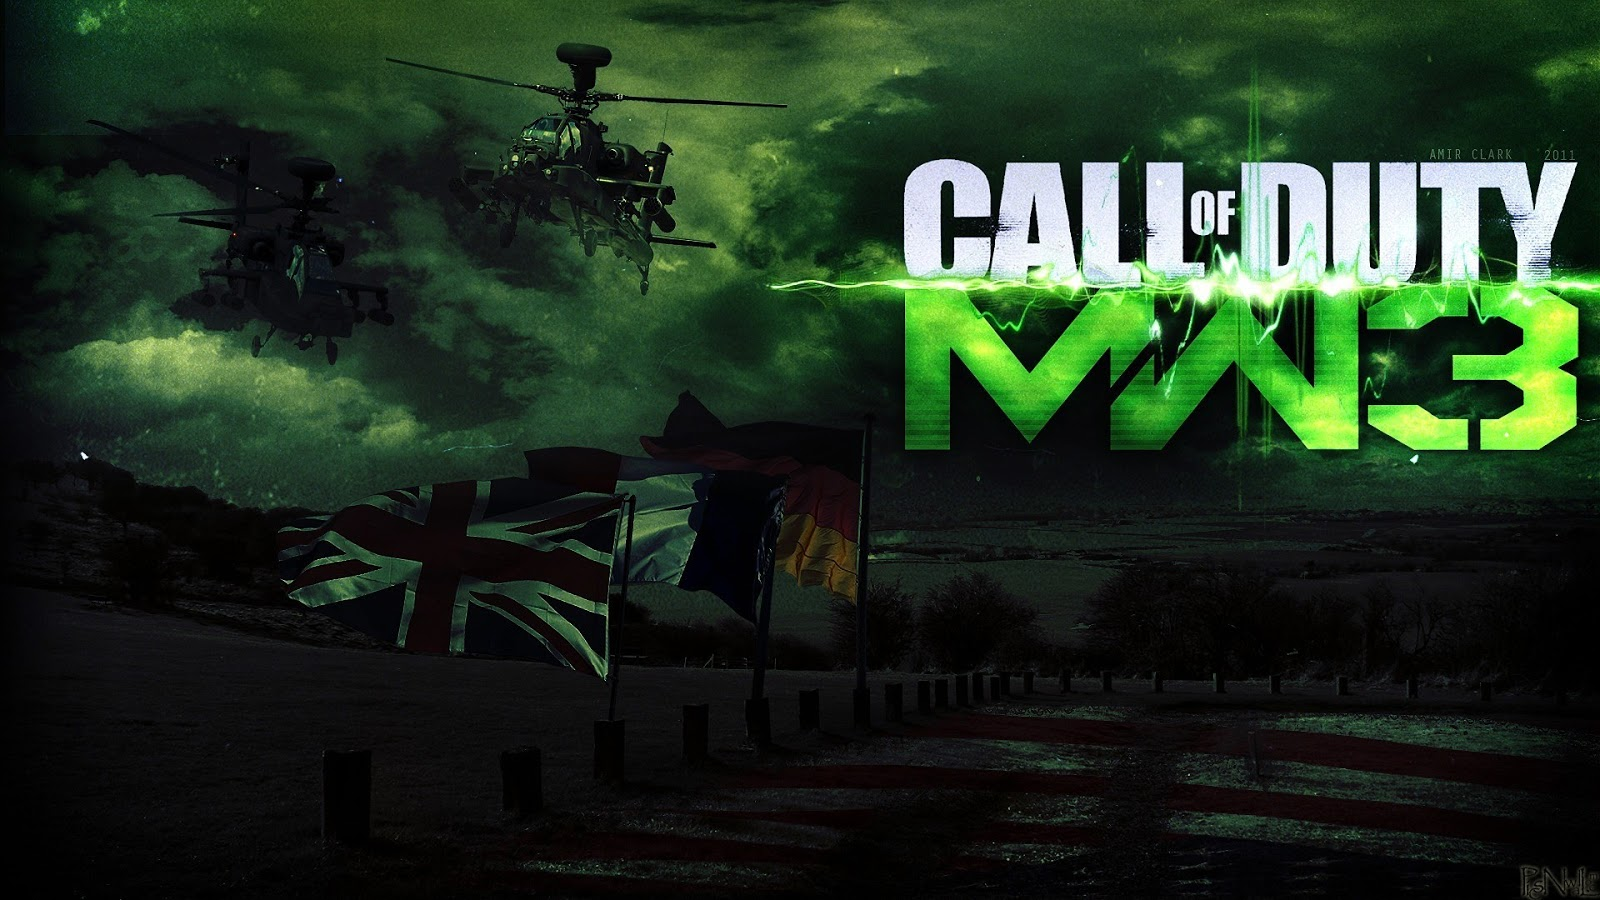 call of duty hd wallpapers call of duty hd wallpapers 1600x900